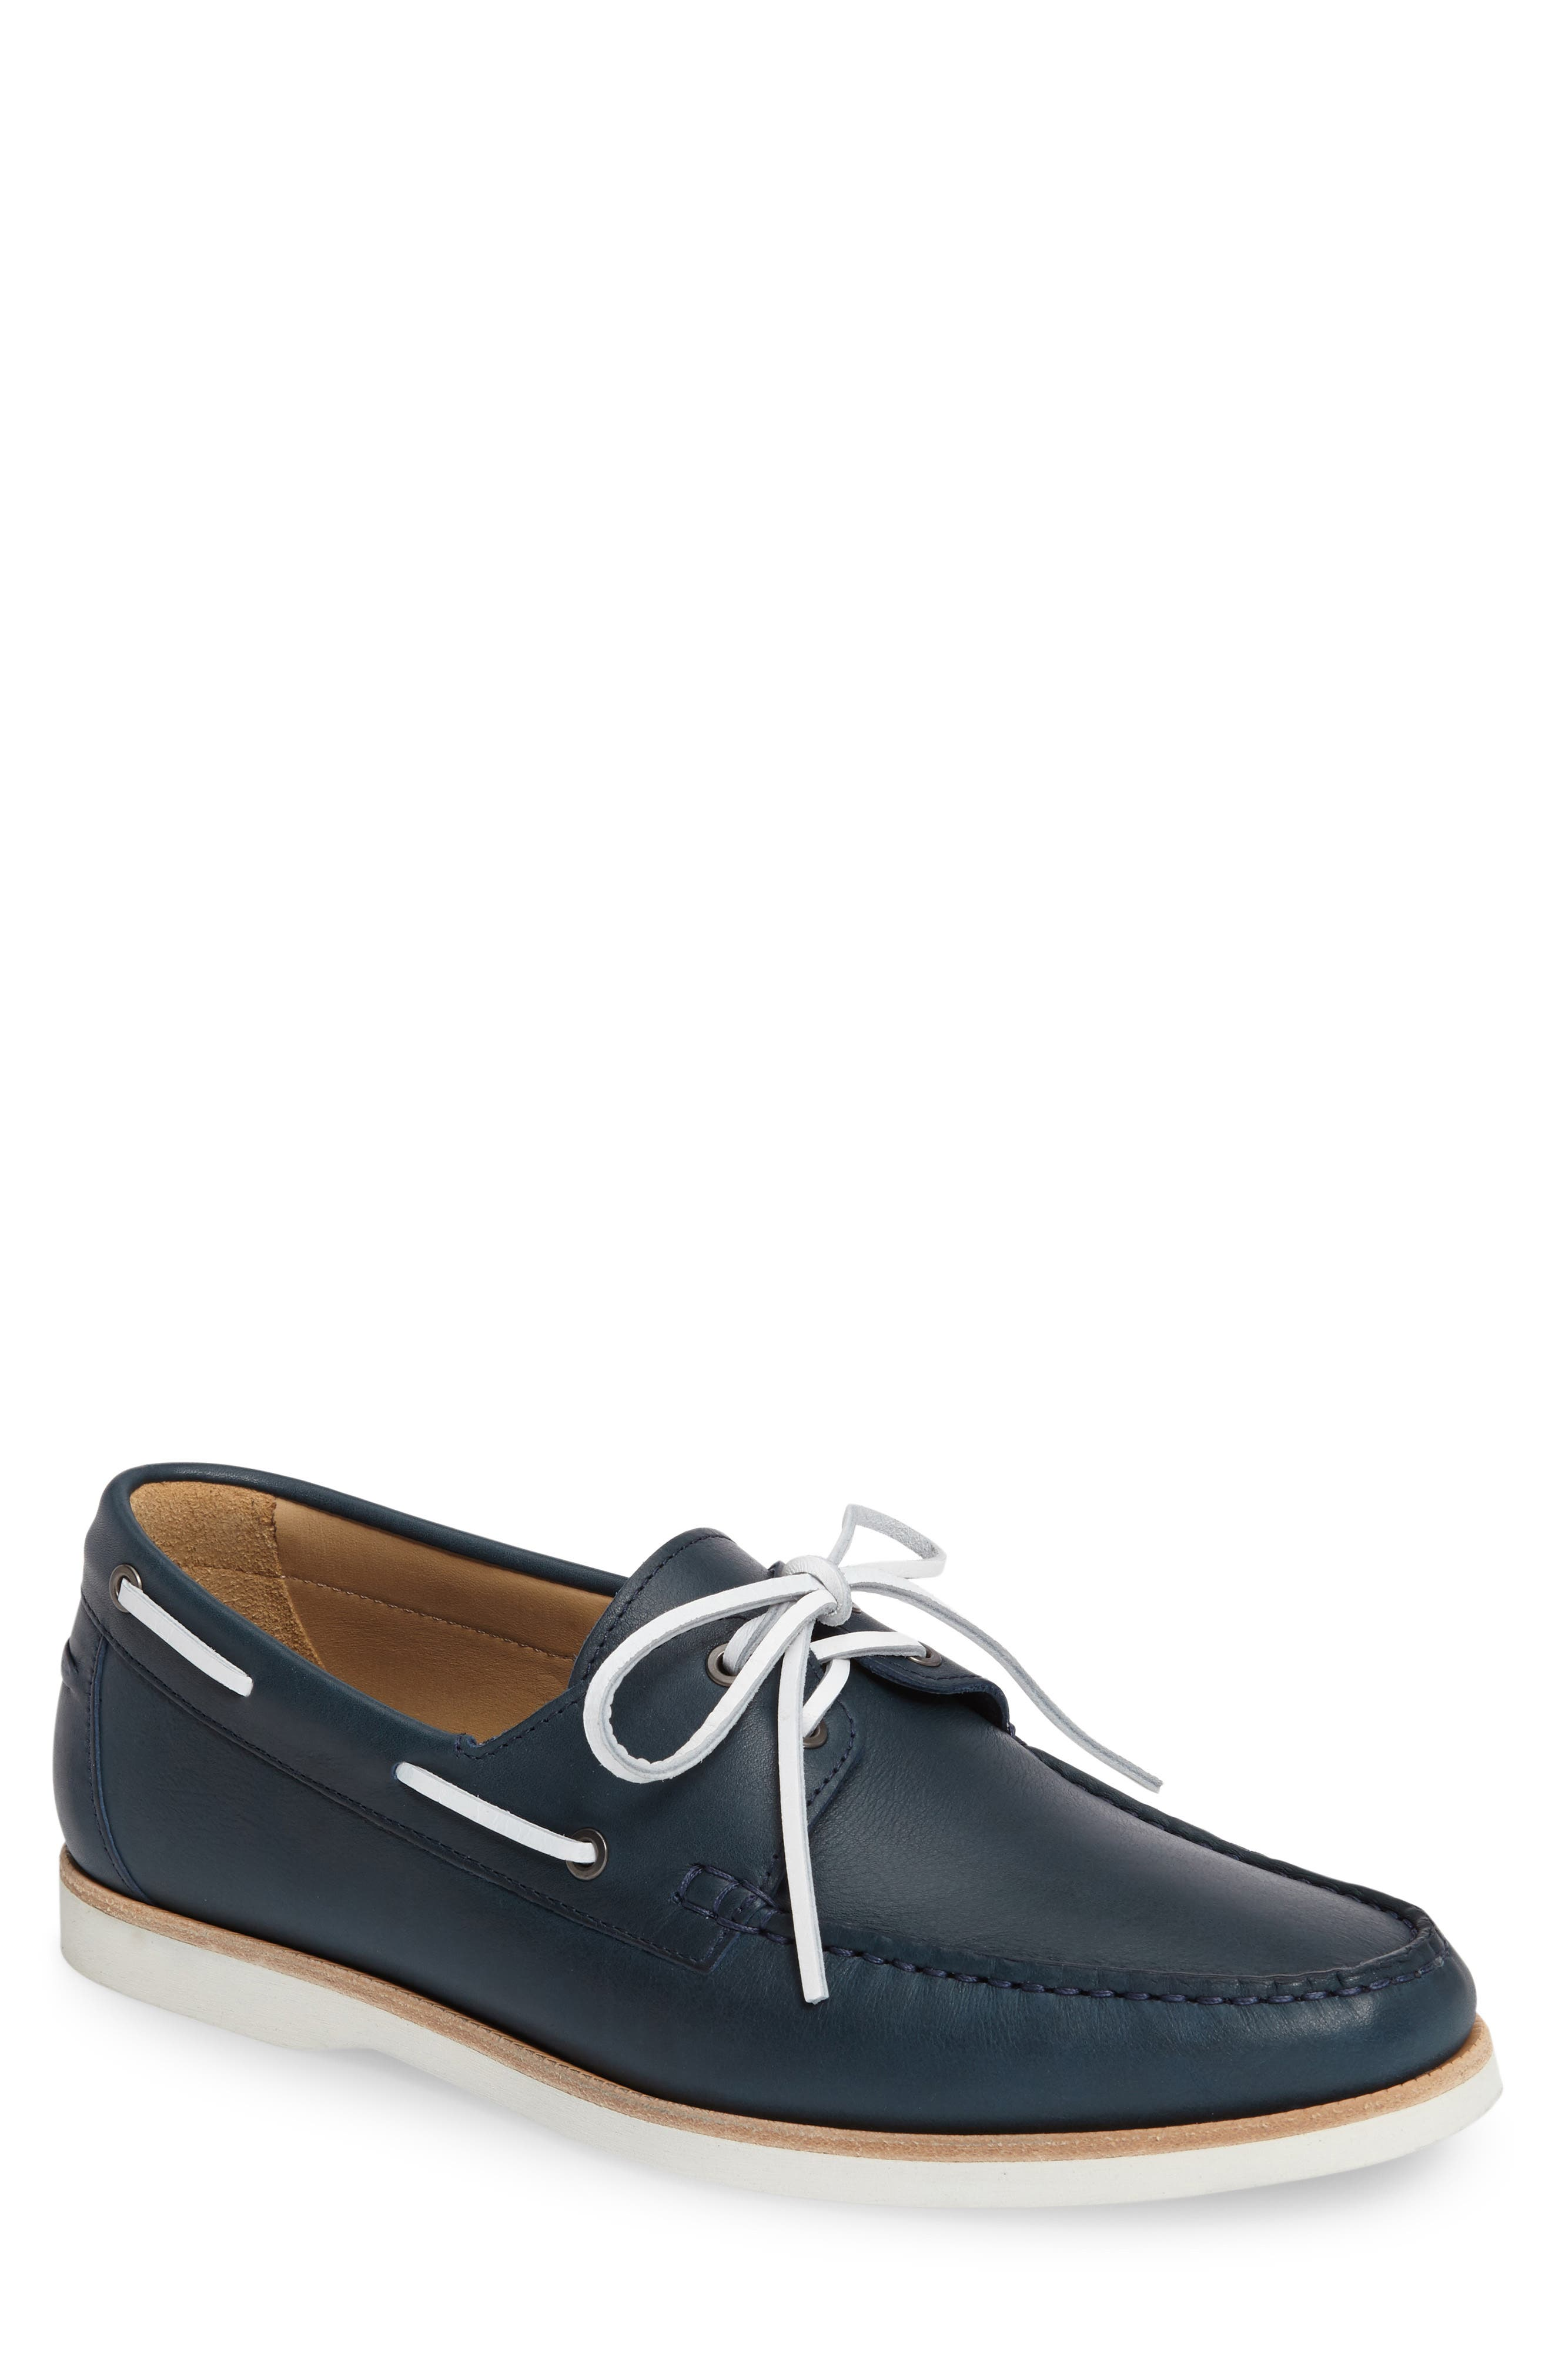 Cooper Boat Shoe,                         Main,                         color, Navy Leather